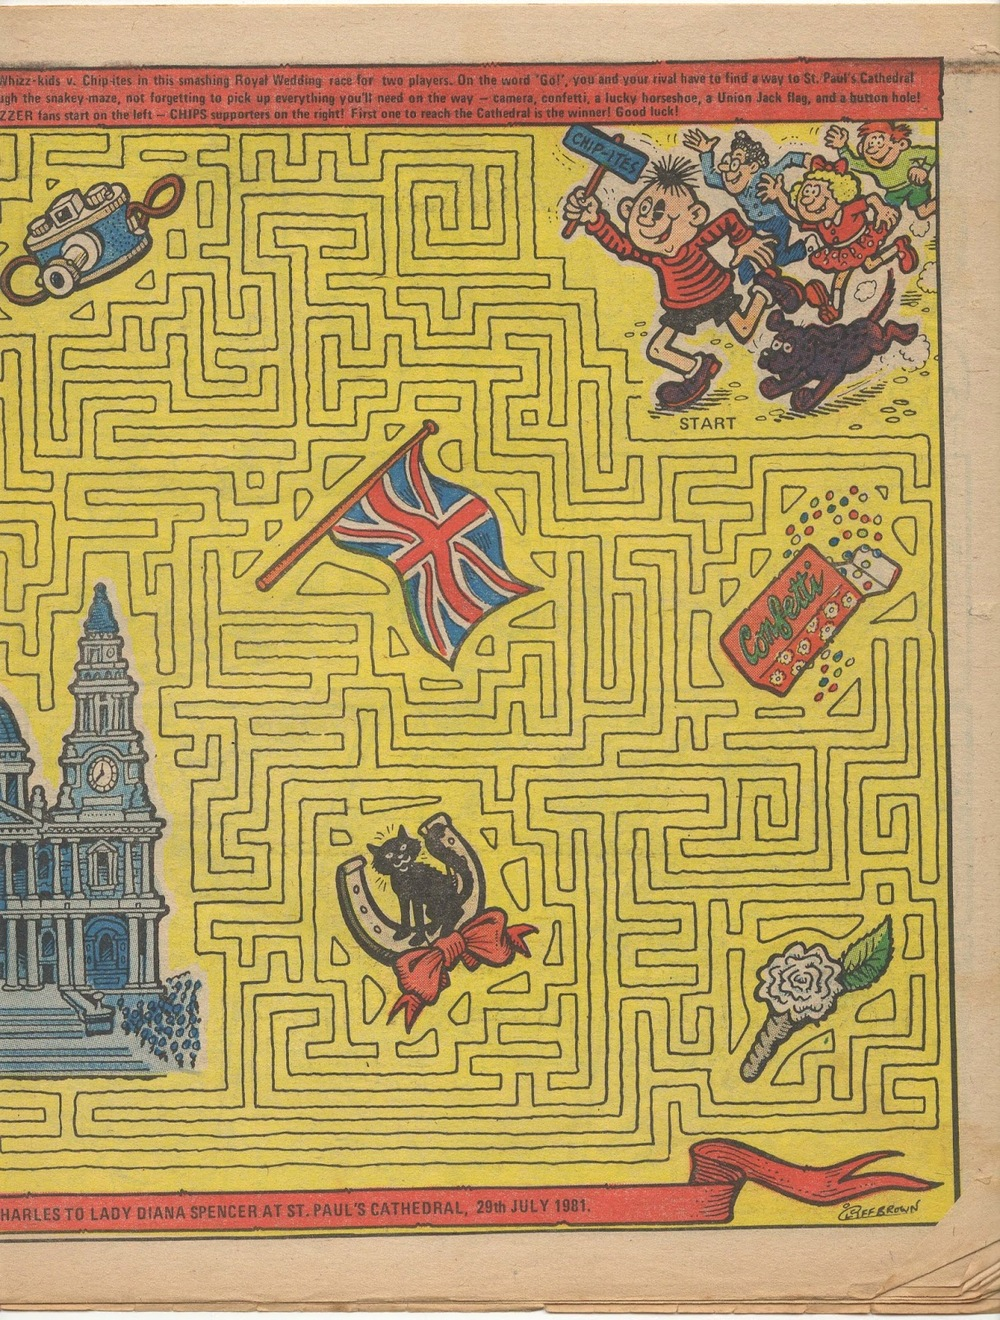 Whizz-kids v Chip-ites Maze Chase: Cliff Brown (artist)